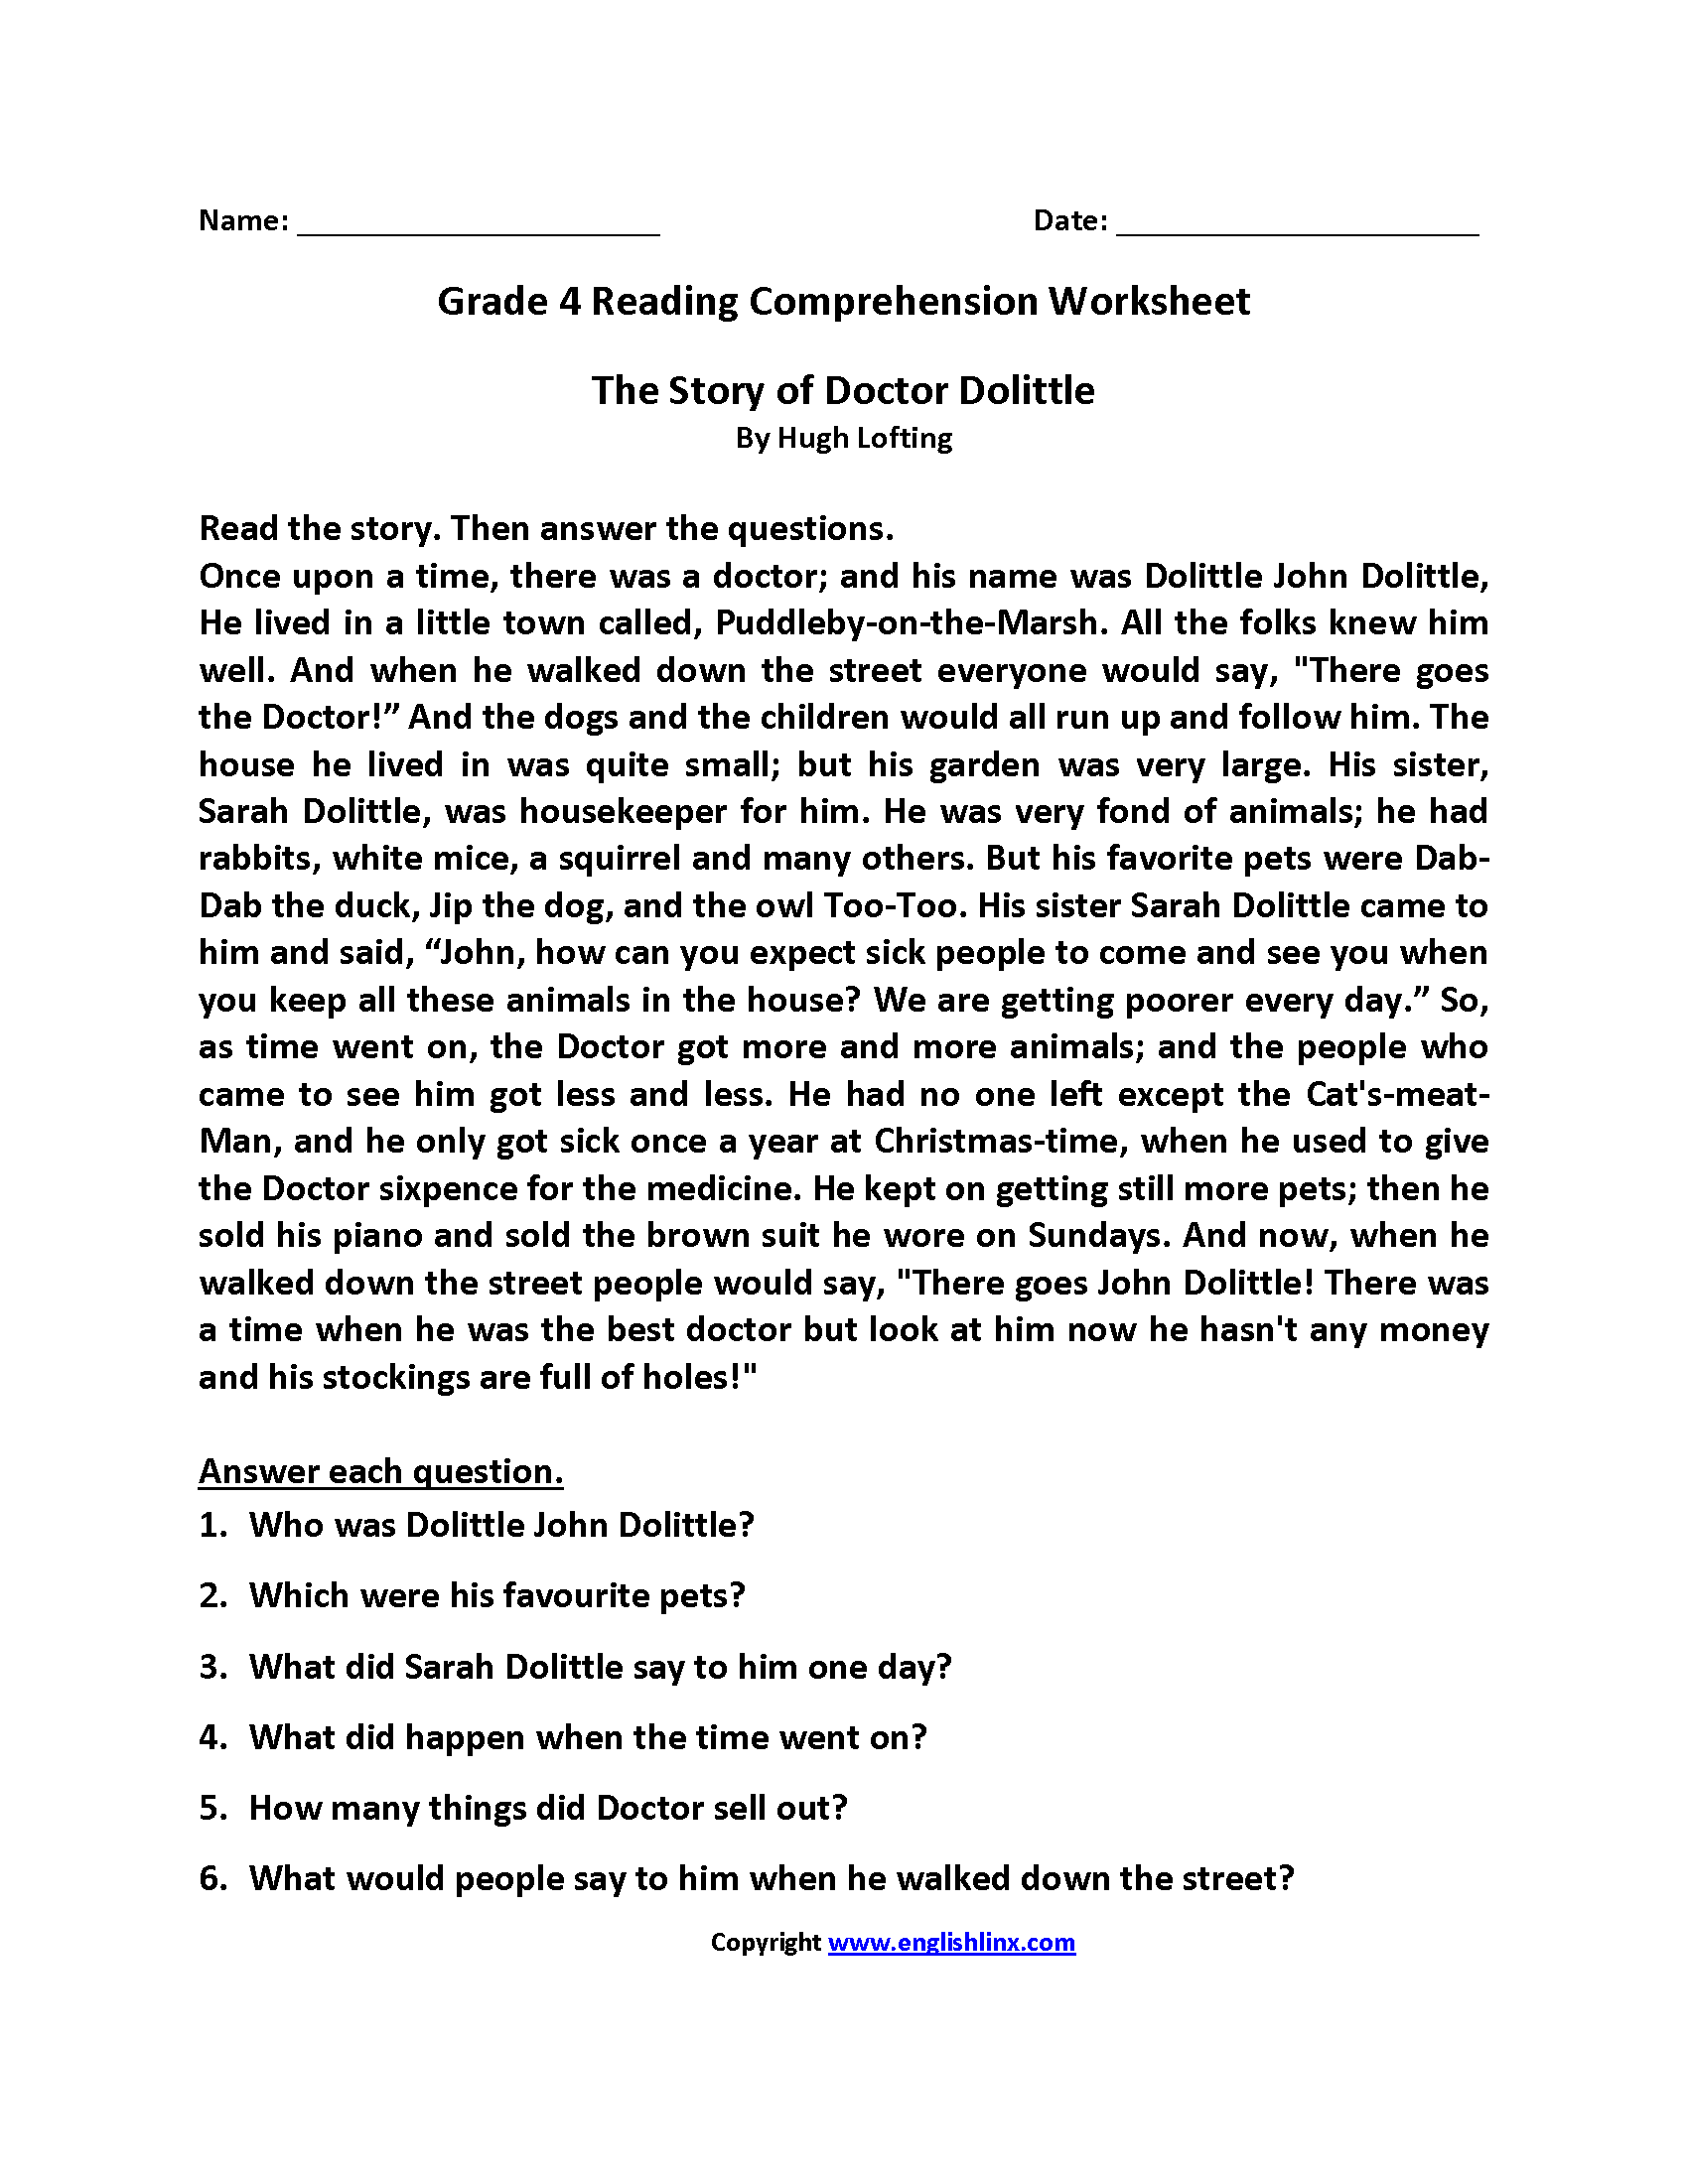 Worksheet 4th Grade Stories 4th grade stories laptuoso mikyu free worksheet